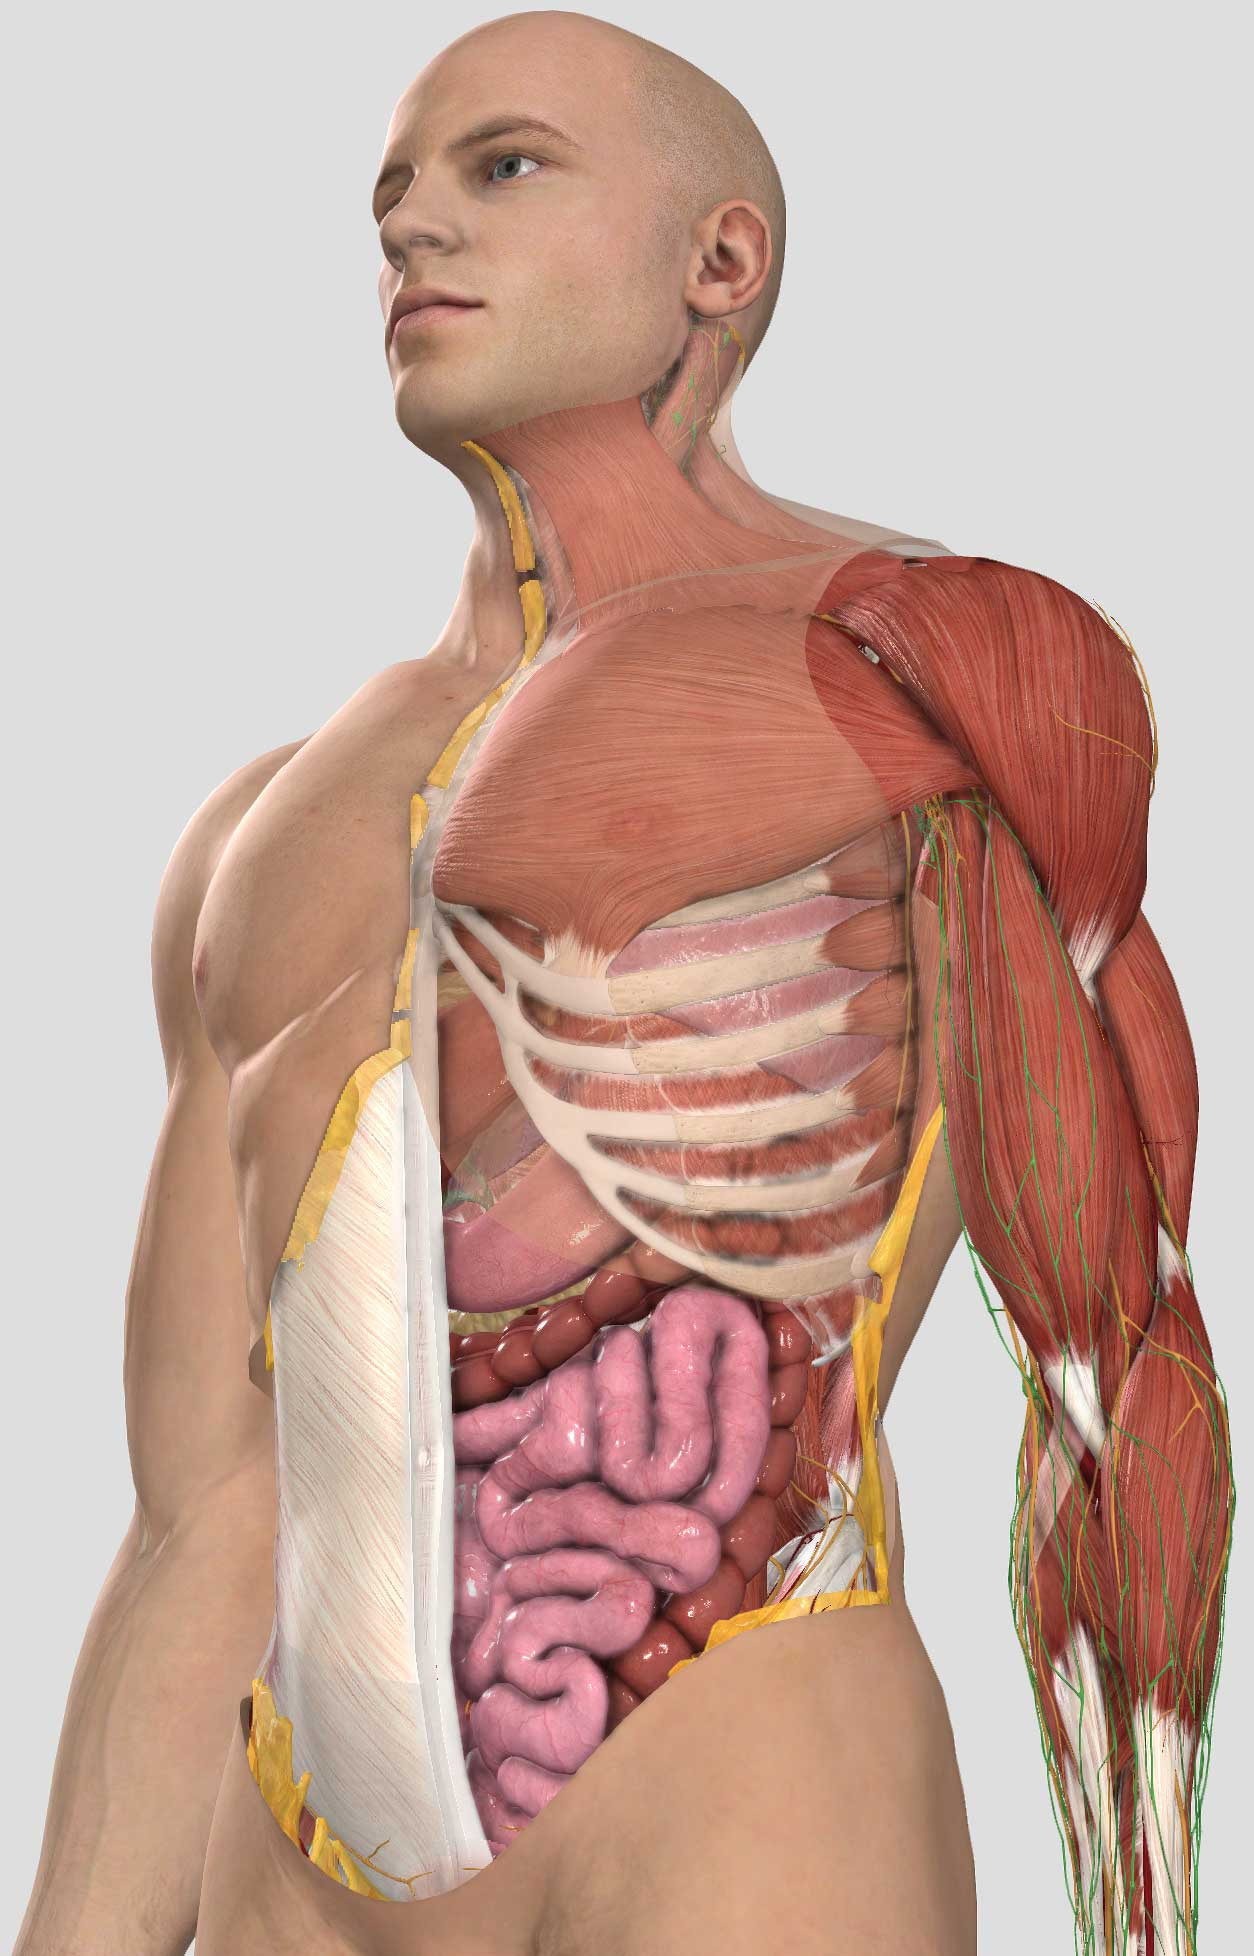 Complete Anatomy For Mobile 3d4medical